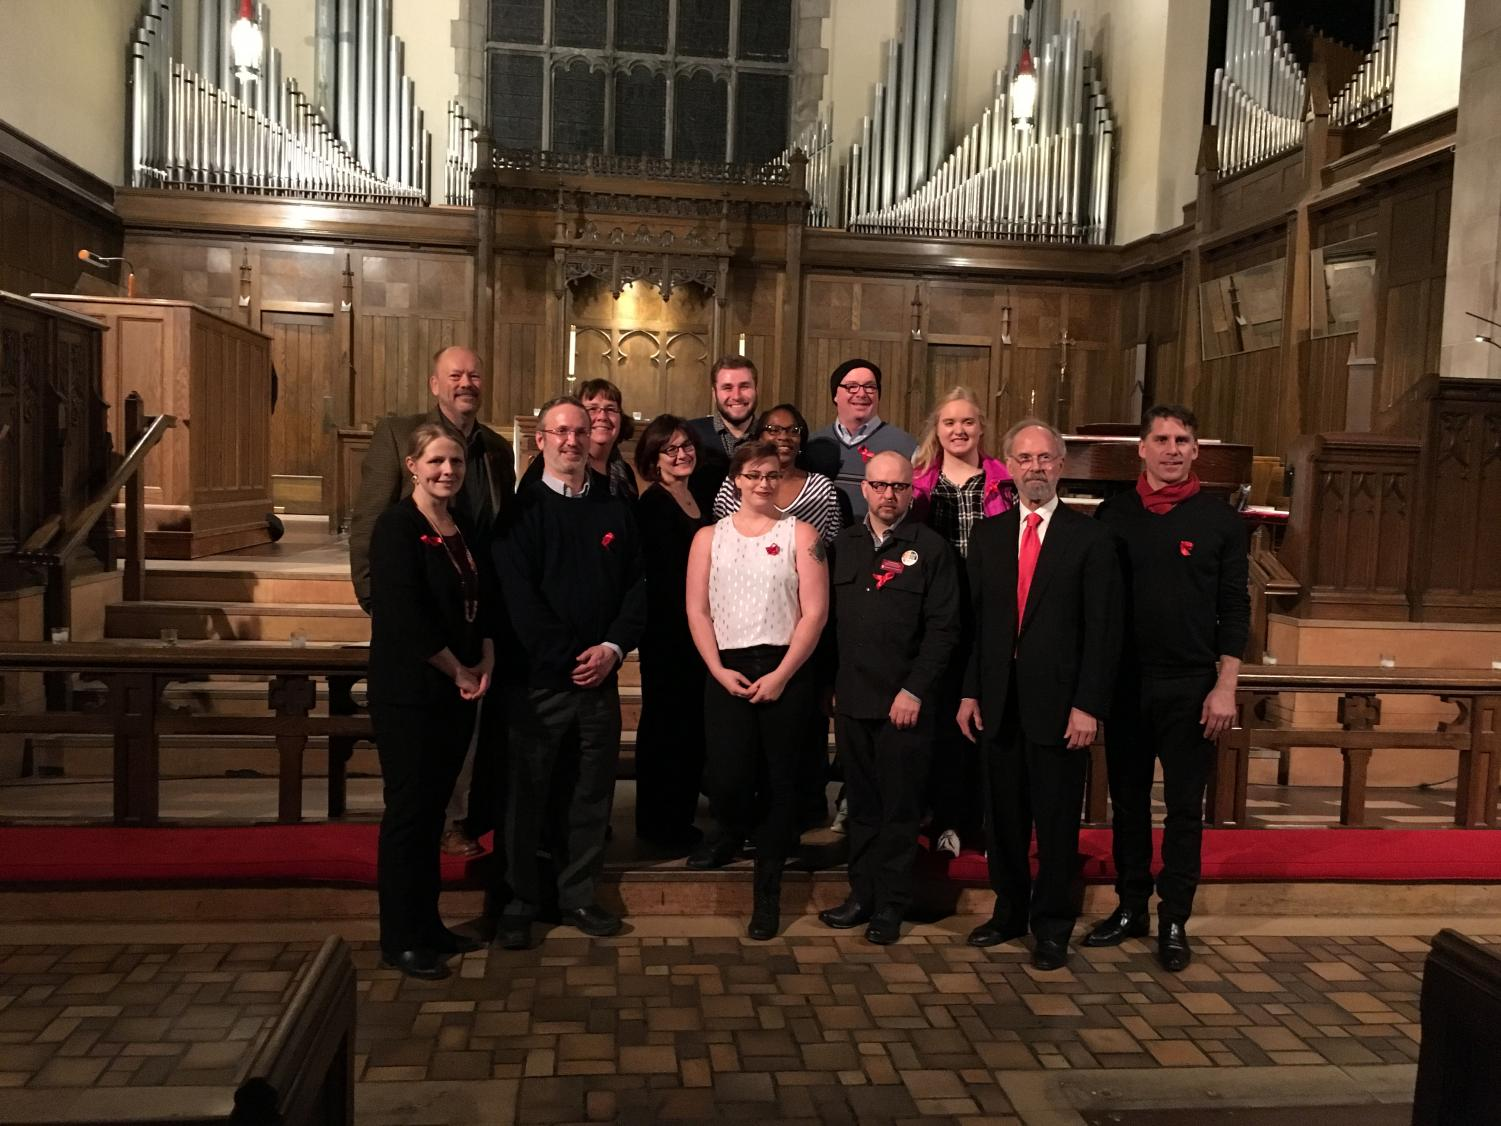 Back row (L to R)